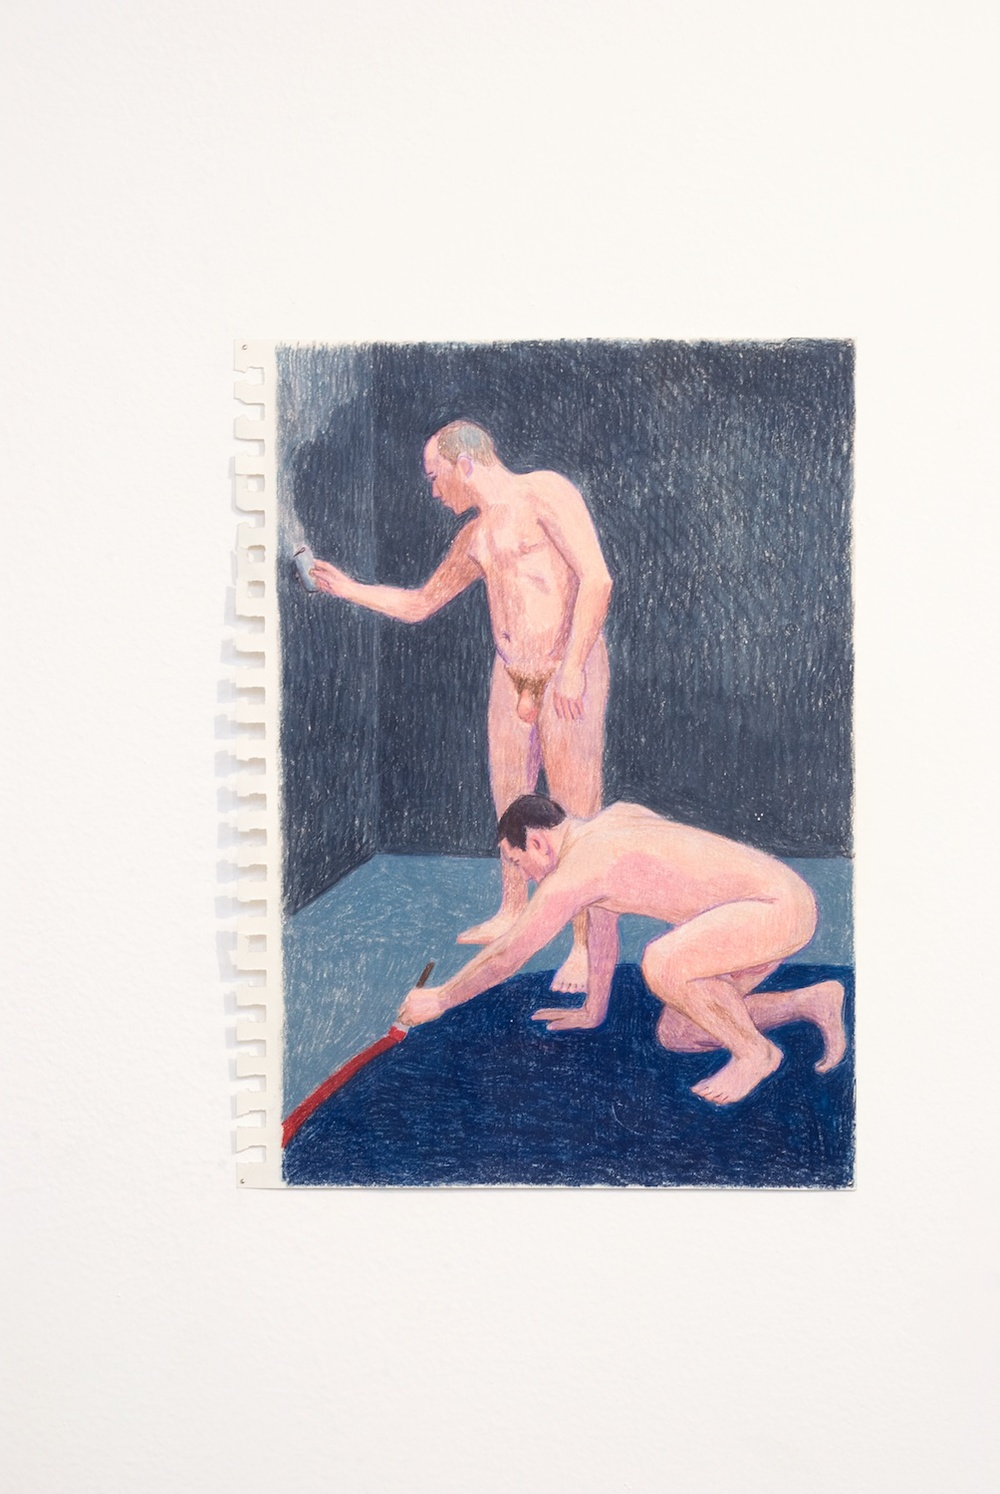 "Elijah Burgher Preparing a ritual space 1 2009 Colored pencil on paper 12"" x 8"" EB010"